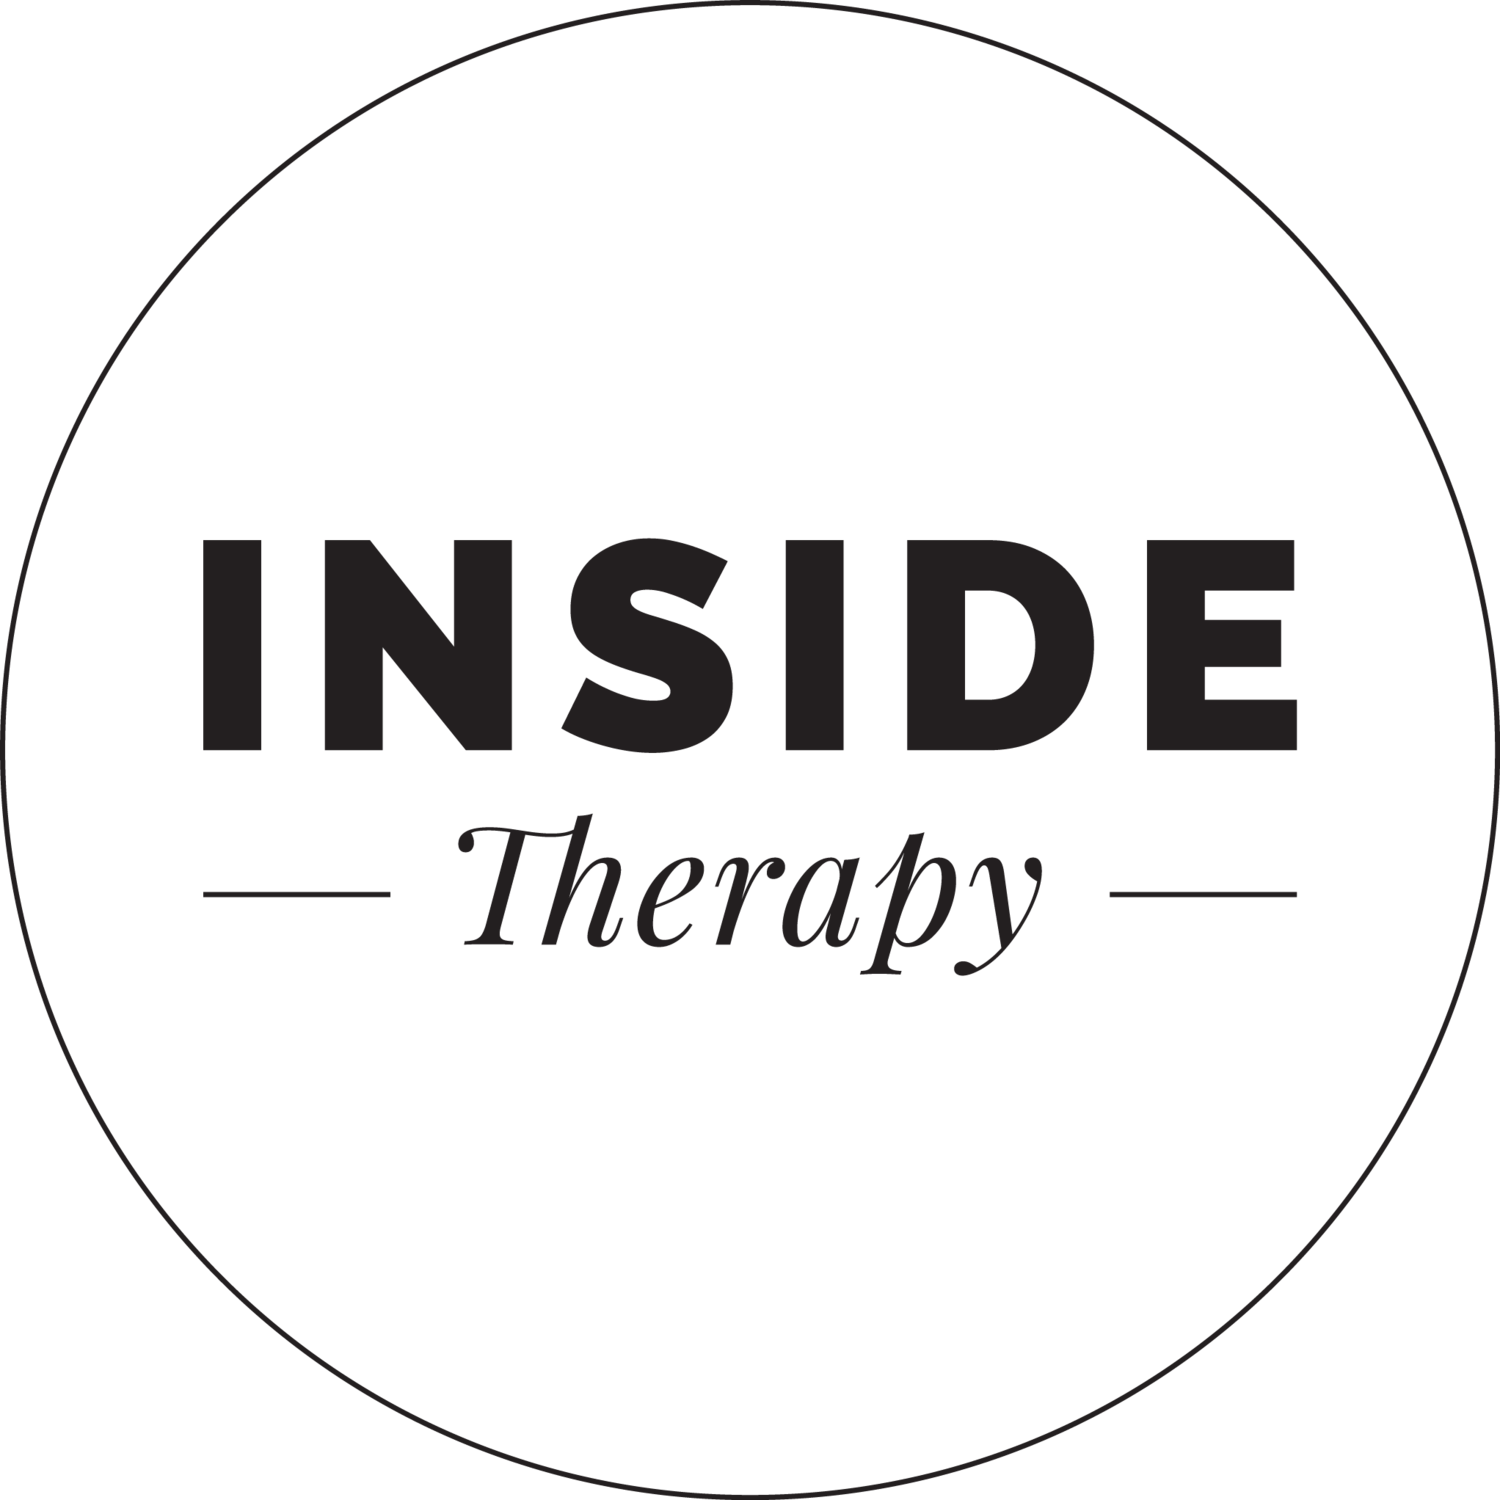 Inside Therapy